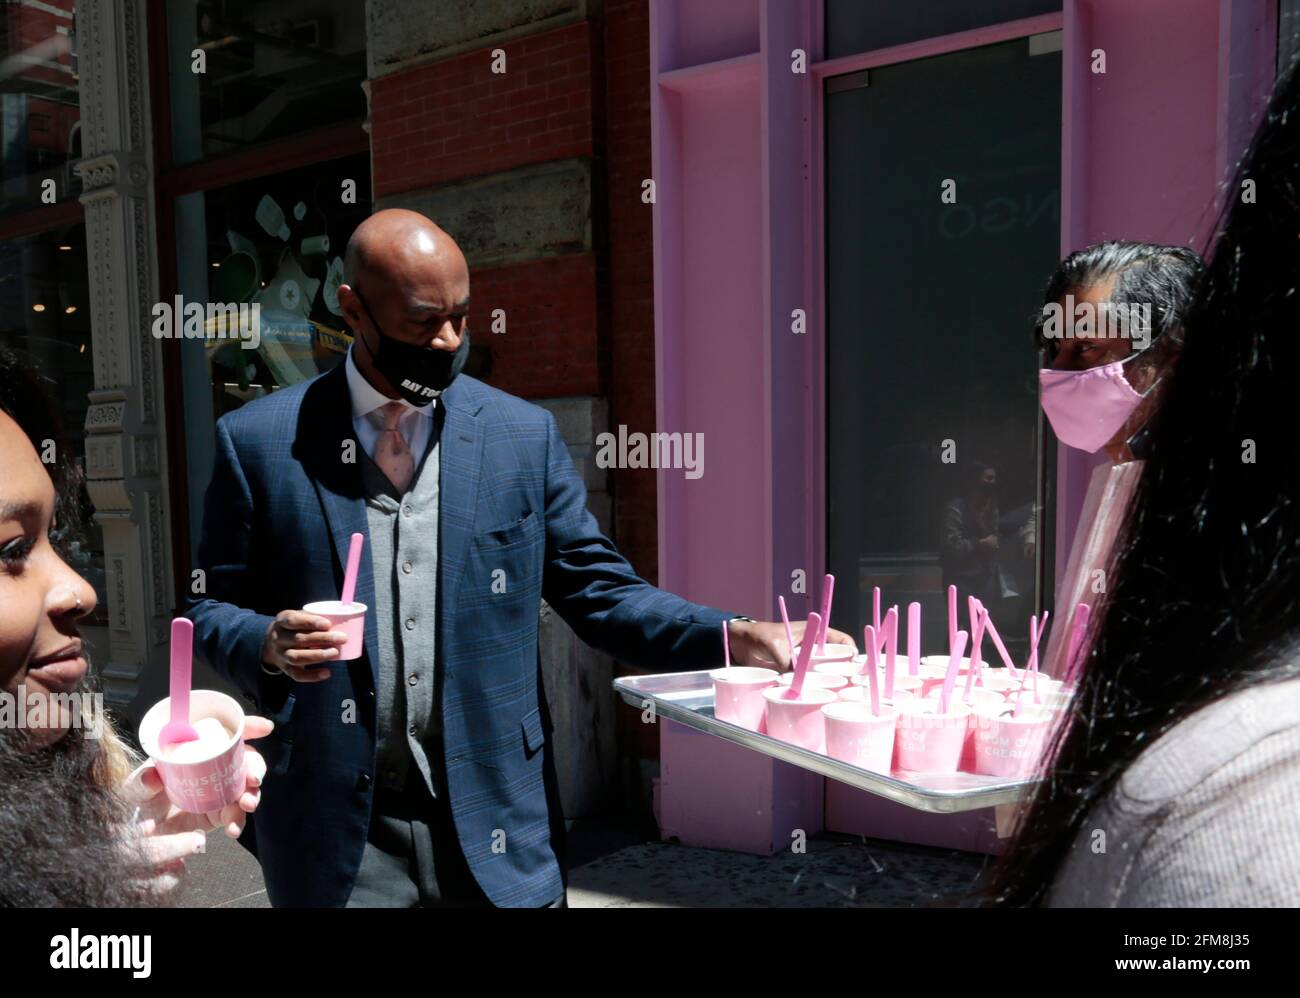 New York, NY, USA. 6th May, 2021. New York City Mayoral Candidate Ray McGuire attends forum with business leaders about his guidelines for the comeback of New York City hosted by Manish Vora - Co-Ceo & Founder - Museum of Ice Cream and then serves Ice Cream to the community in the Soho section of New York City on May 6, 2021. Credit: Mpi43/Media Punch/Alamy Live News Stock Photo